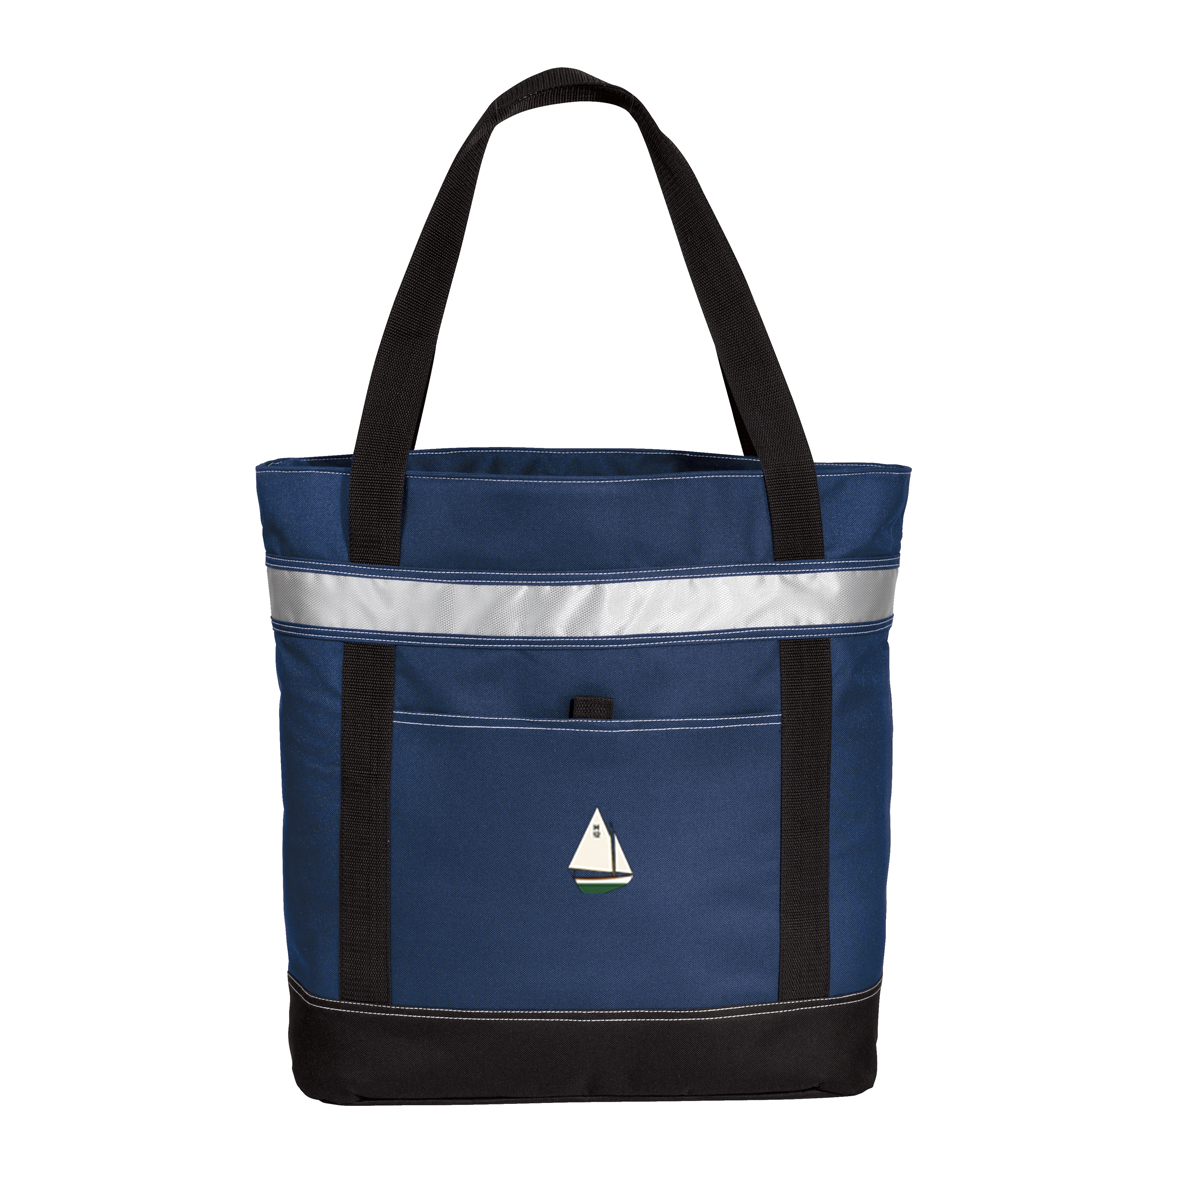 H-CLASS - INSULATED TOTE COOLER